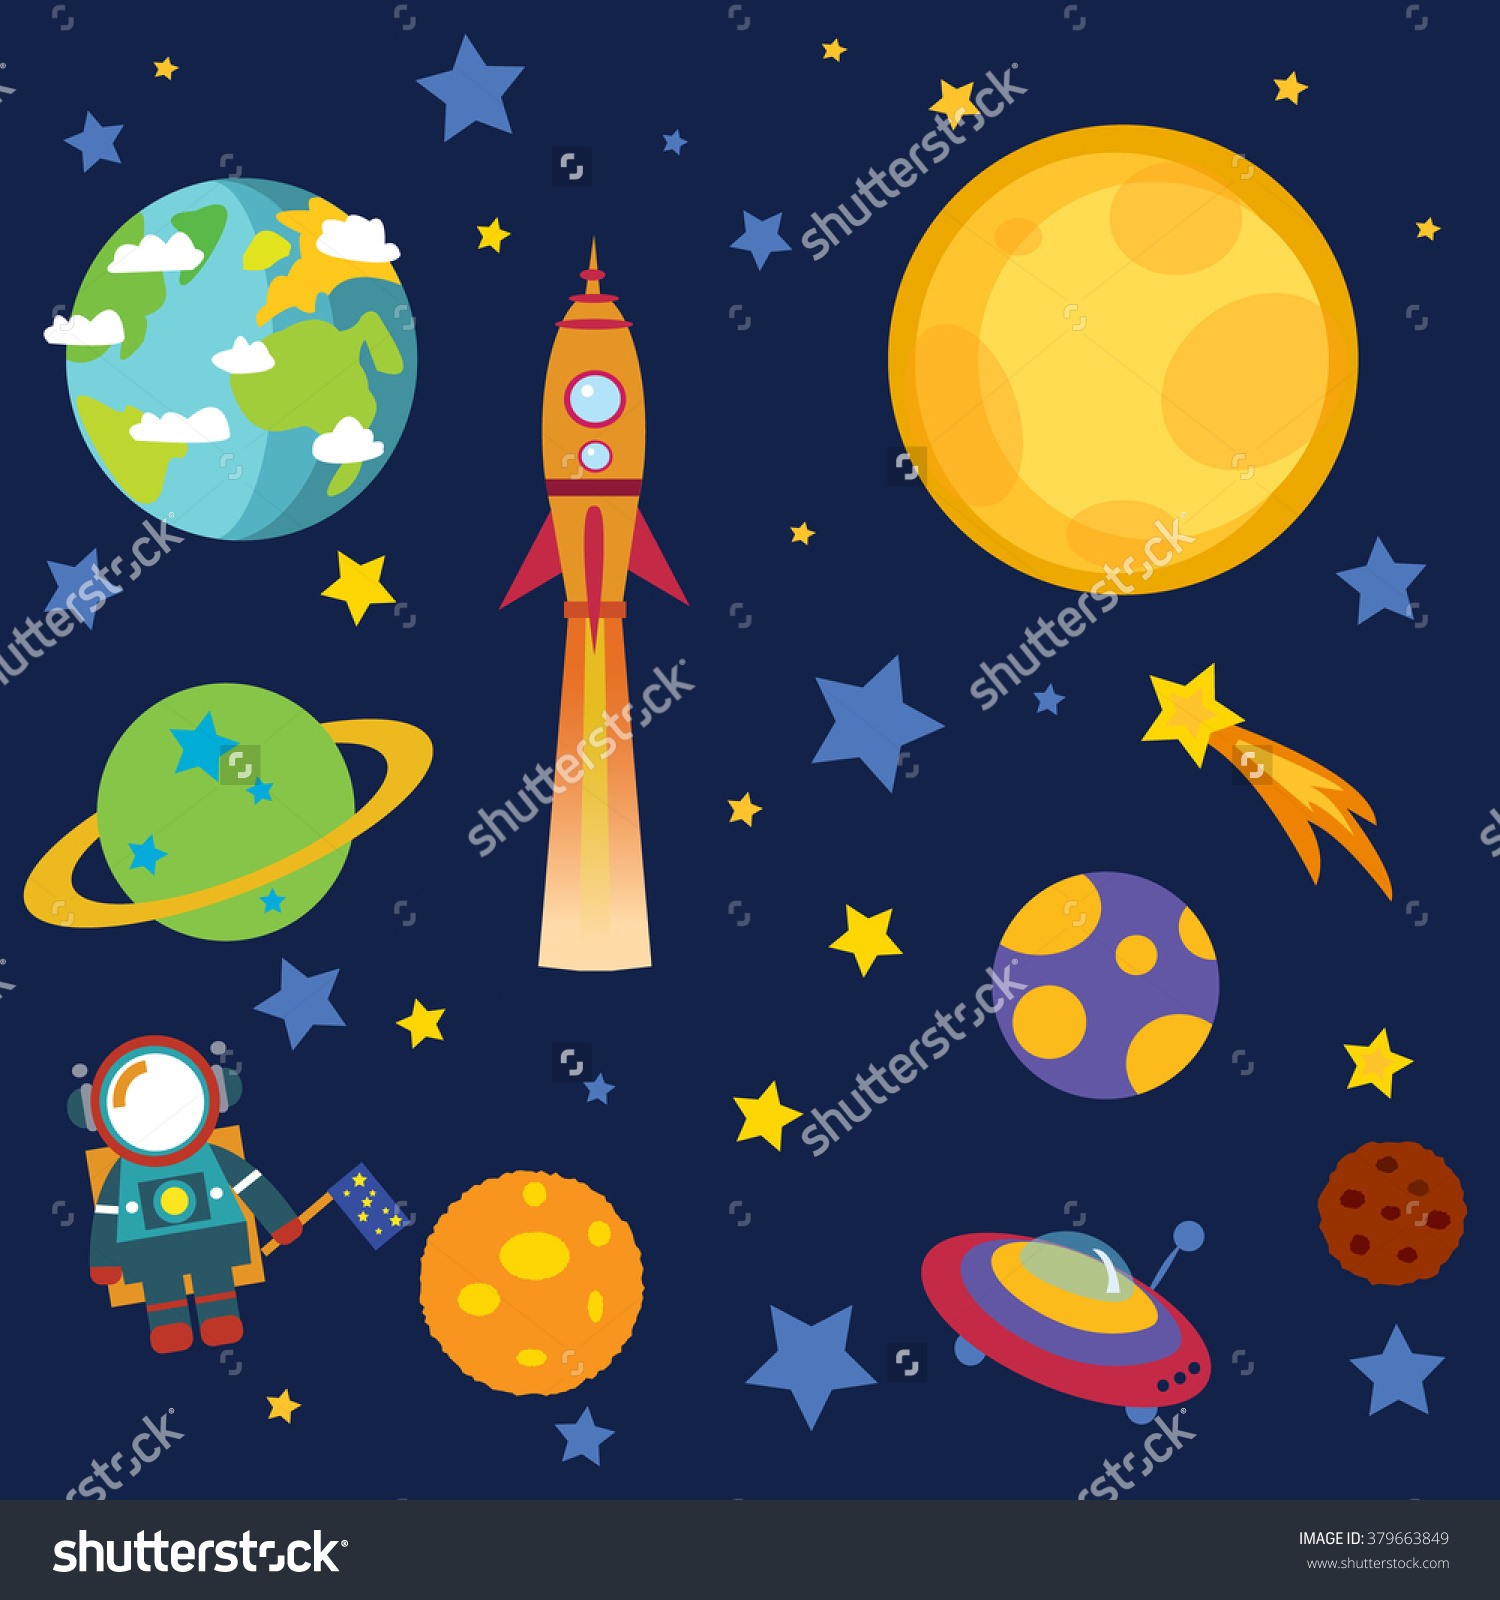 Outer Space Stars Moon Planets Astronaut Stock Vector 379663849.